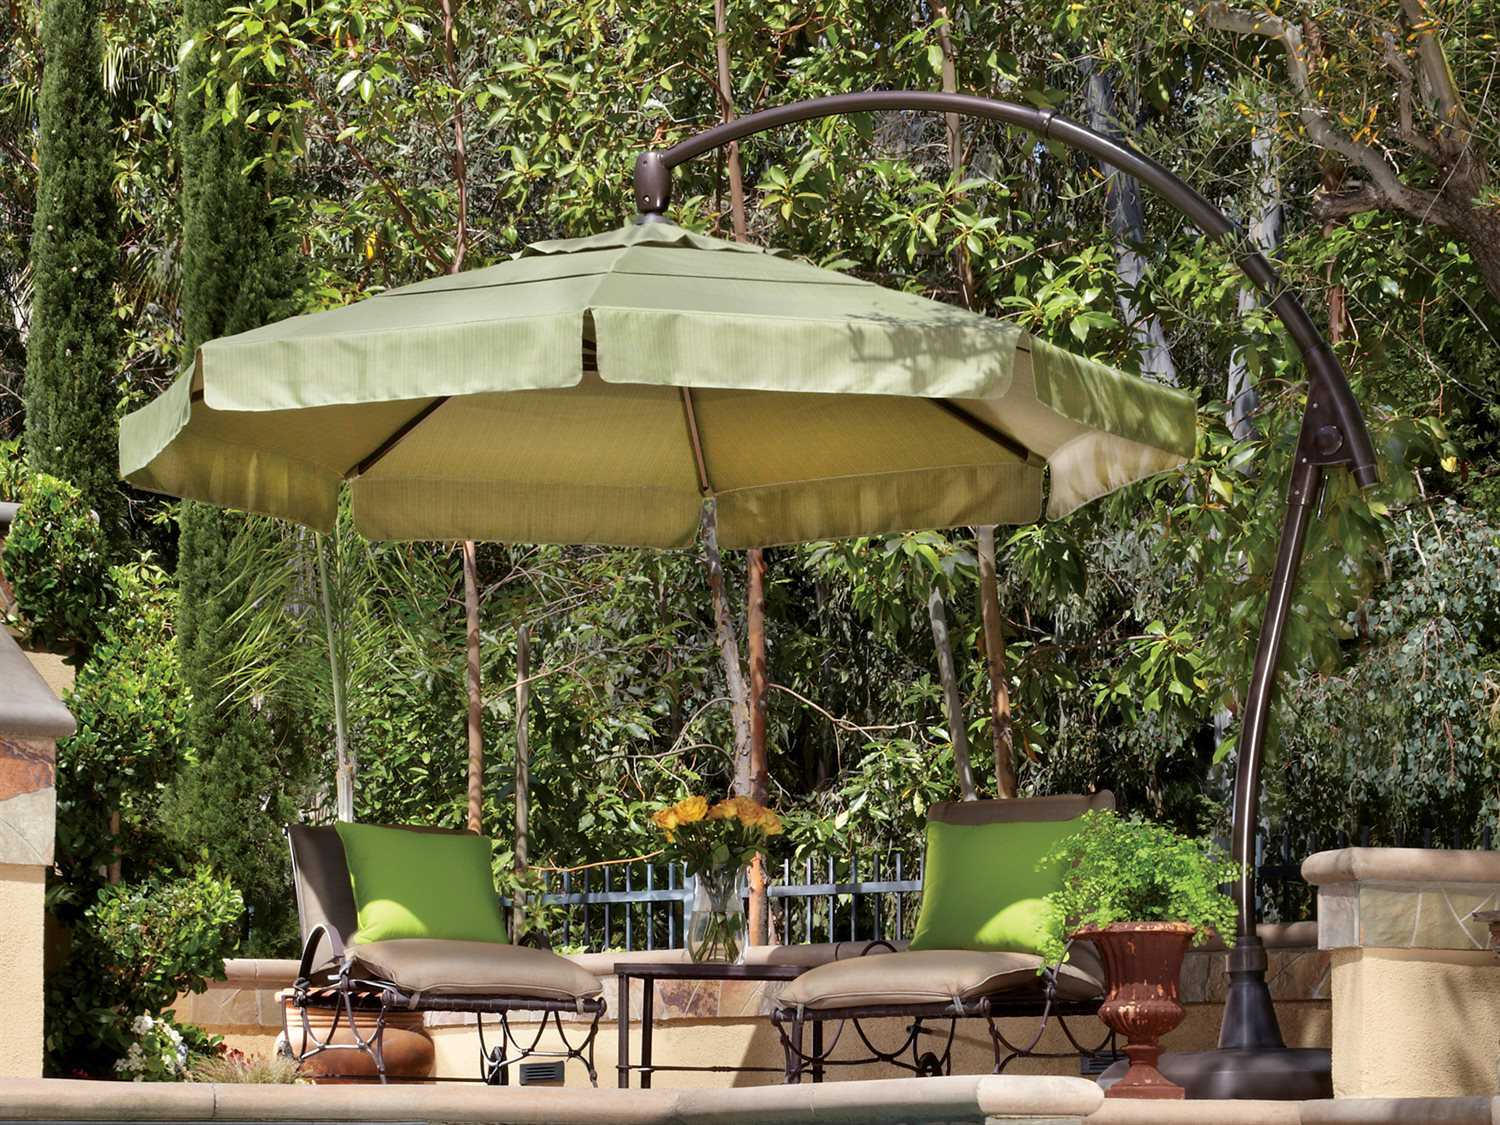 Target Umbrella Patio | Outdoor Conversation Set Clearance | Costco Offset Umbrella